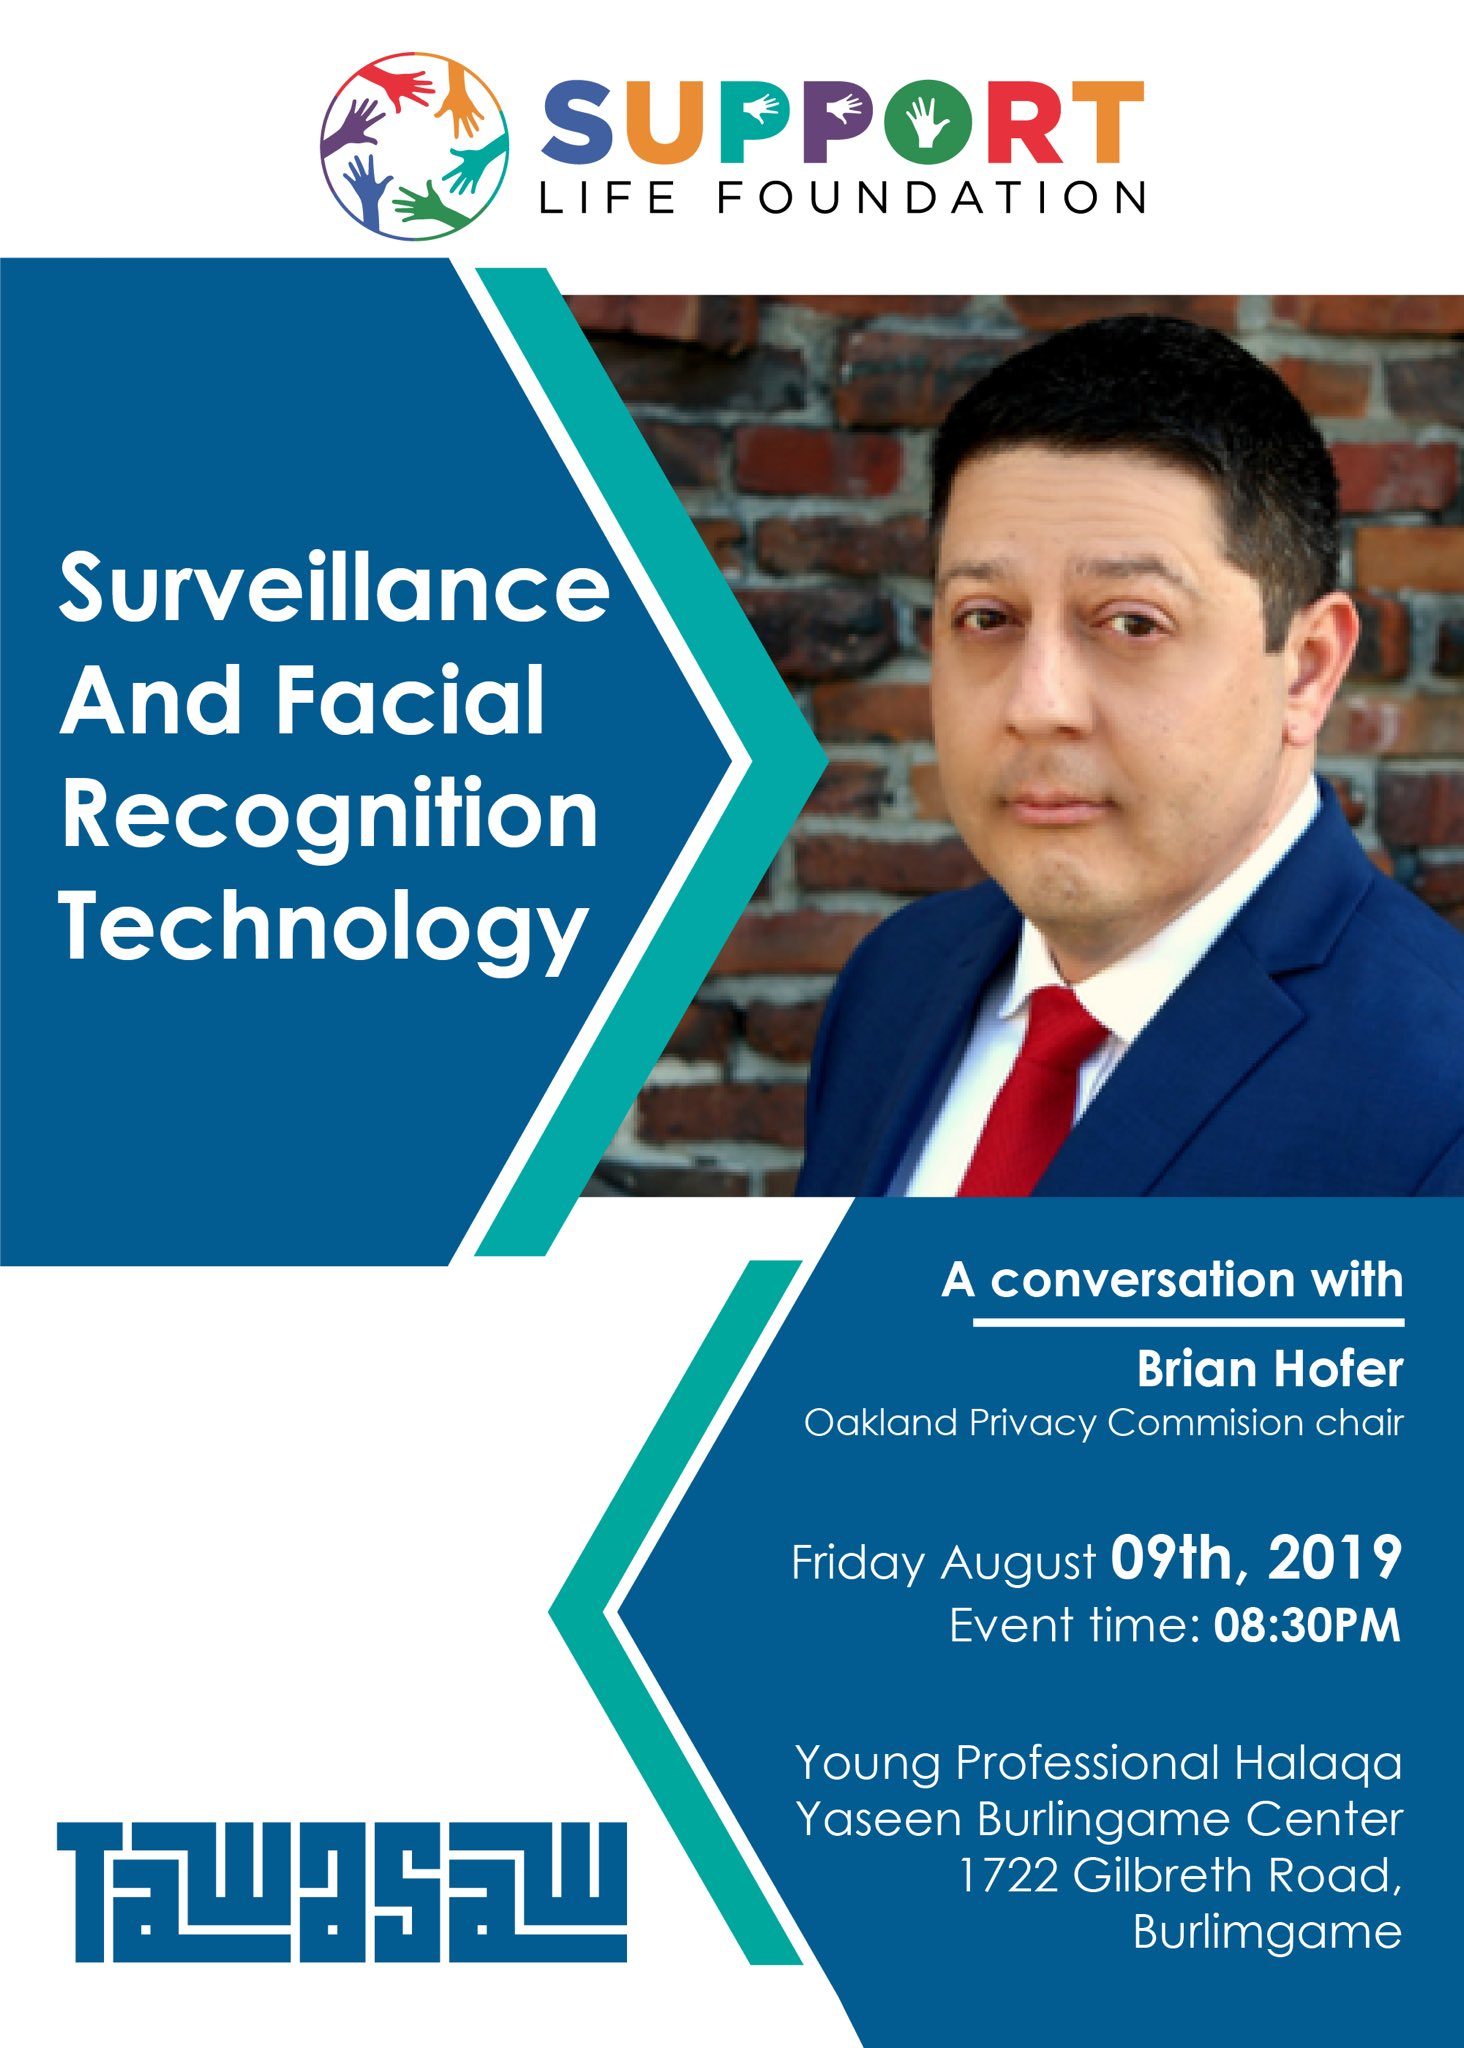 Surveillance and Facial Recognition Technology: A Conversation With Brian Hofer @ Yaseen Burlingame Center